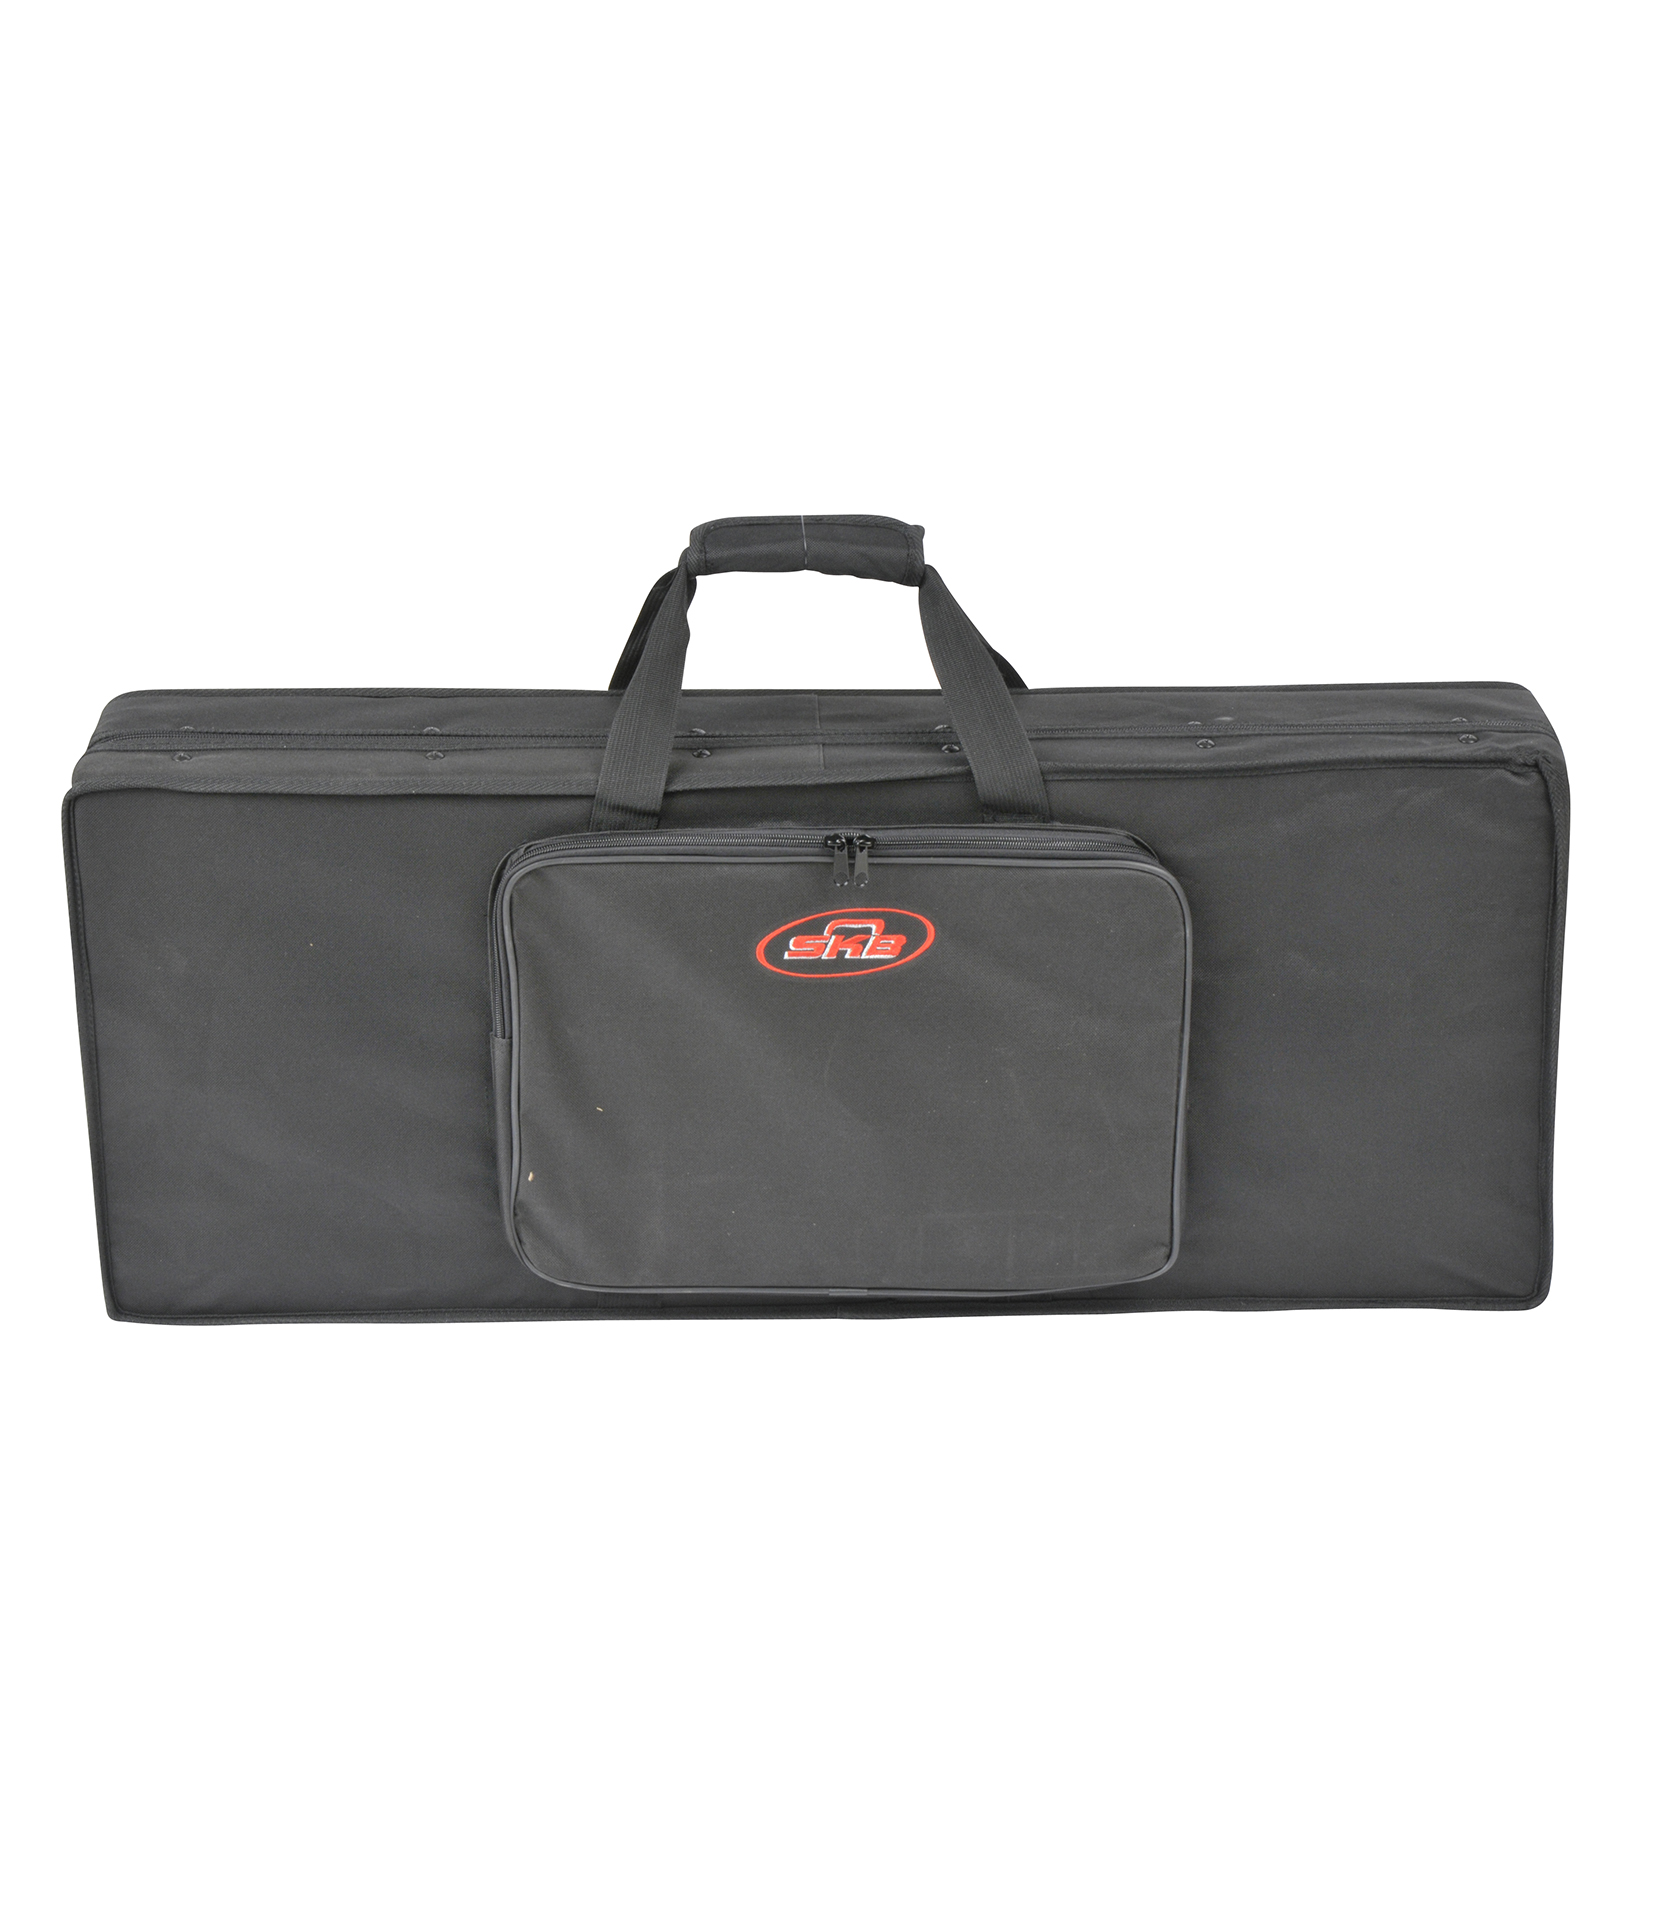 buy skb 1skb sc3212 32 x 12 3 5 controller soft case